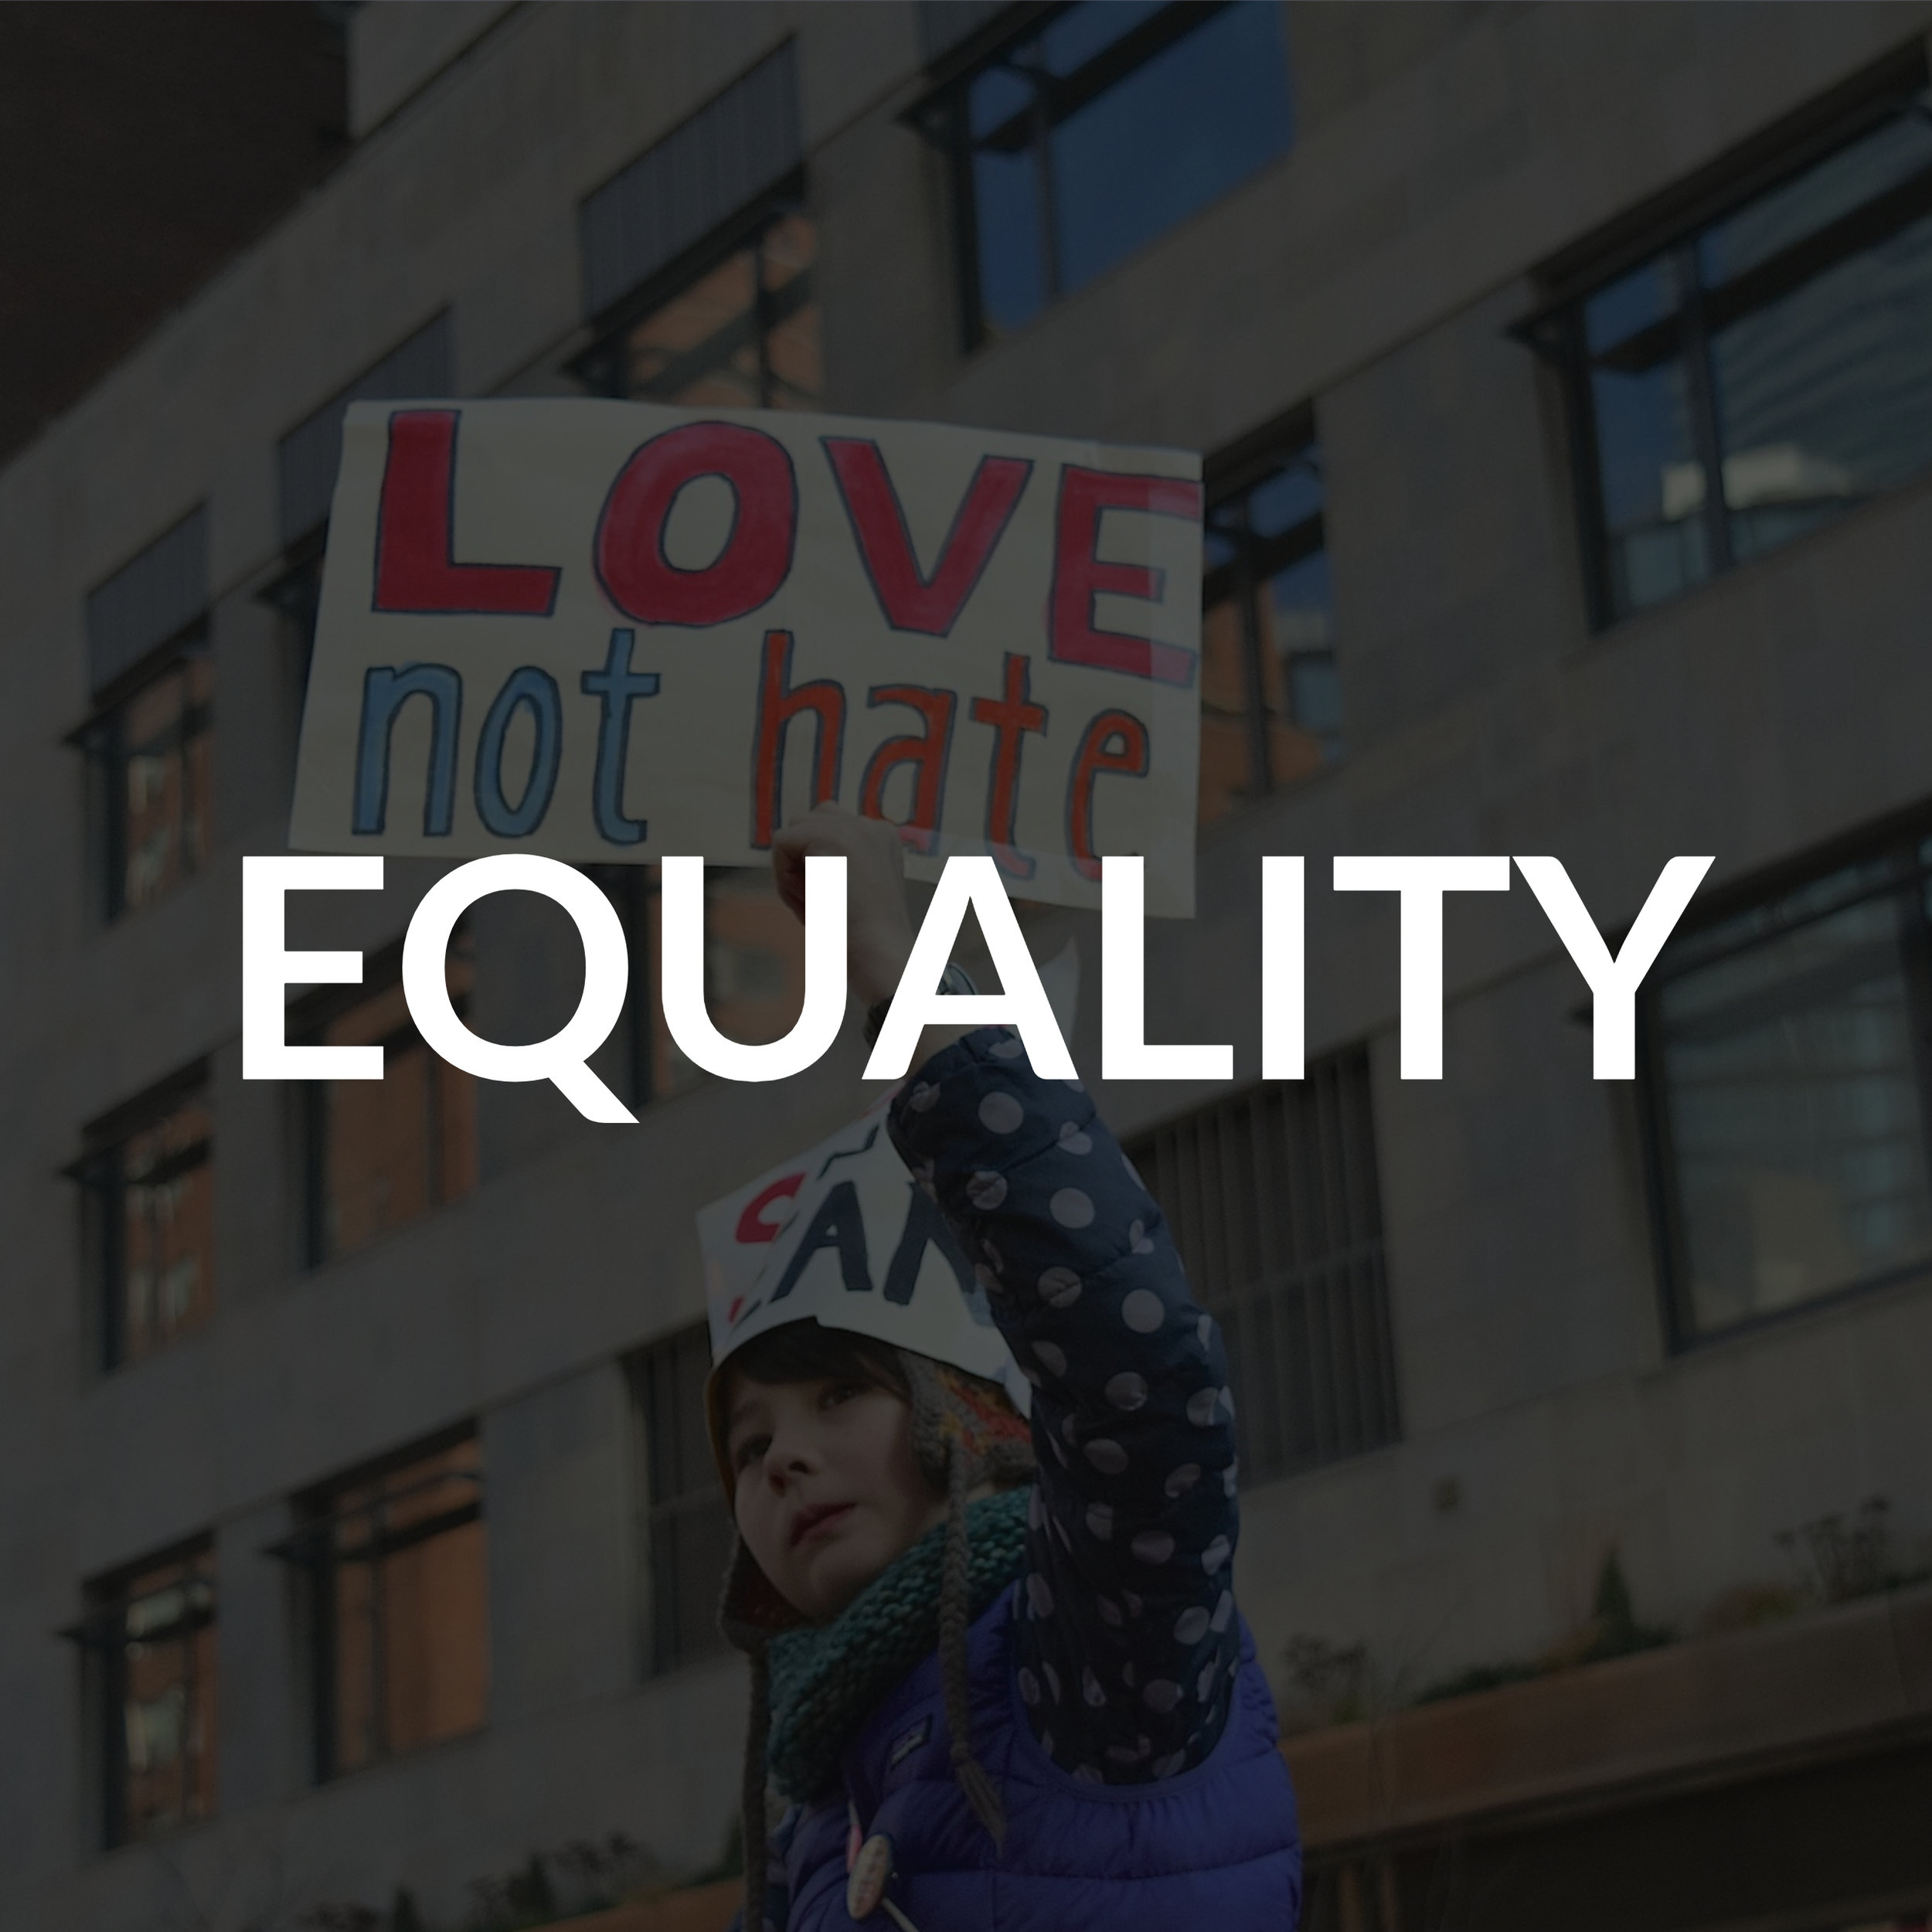 Like most of us, I believe in a government that treasures the principle that all are created equal, and that all should have equal access to the opportunities Utah provides. I support legislating equal pay for women, a statewide accommodation law that requires businesses not to discriminate on the grounds of race, gender, religion, or sexuality, and hate crimes legislation that will create stiff punishments for those who threaten the safety or livelihood of marginalized and minority populations.